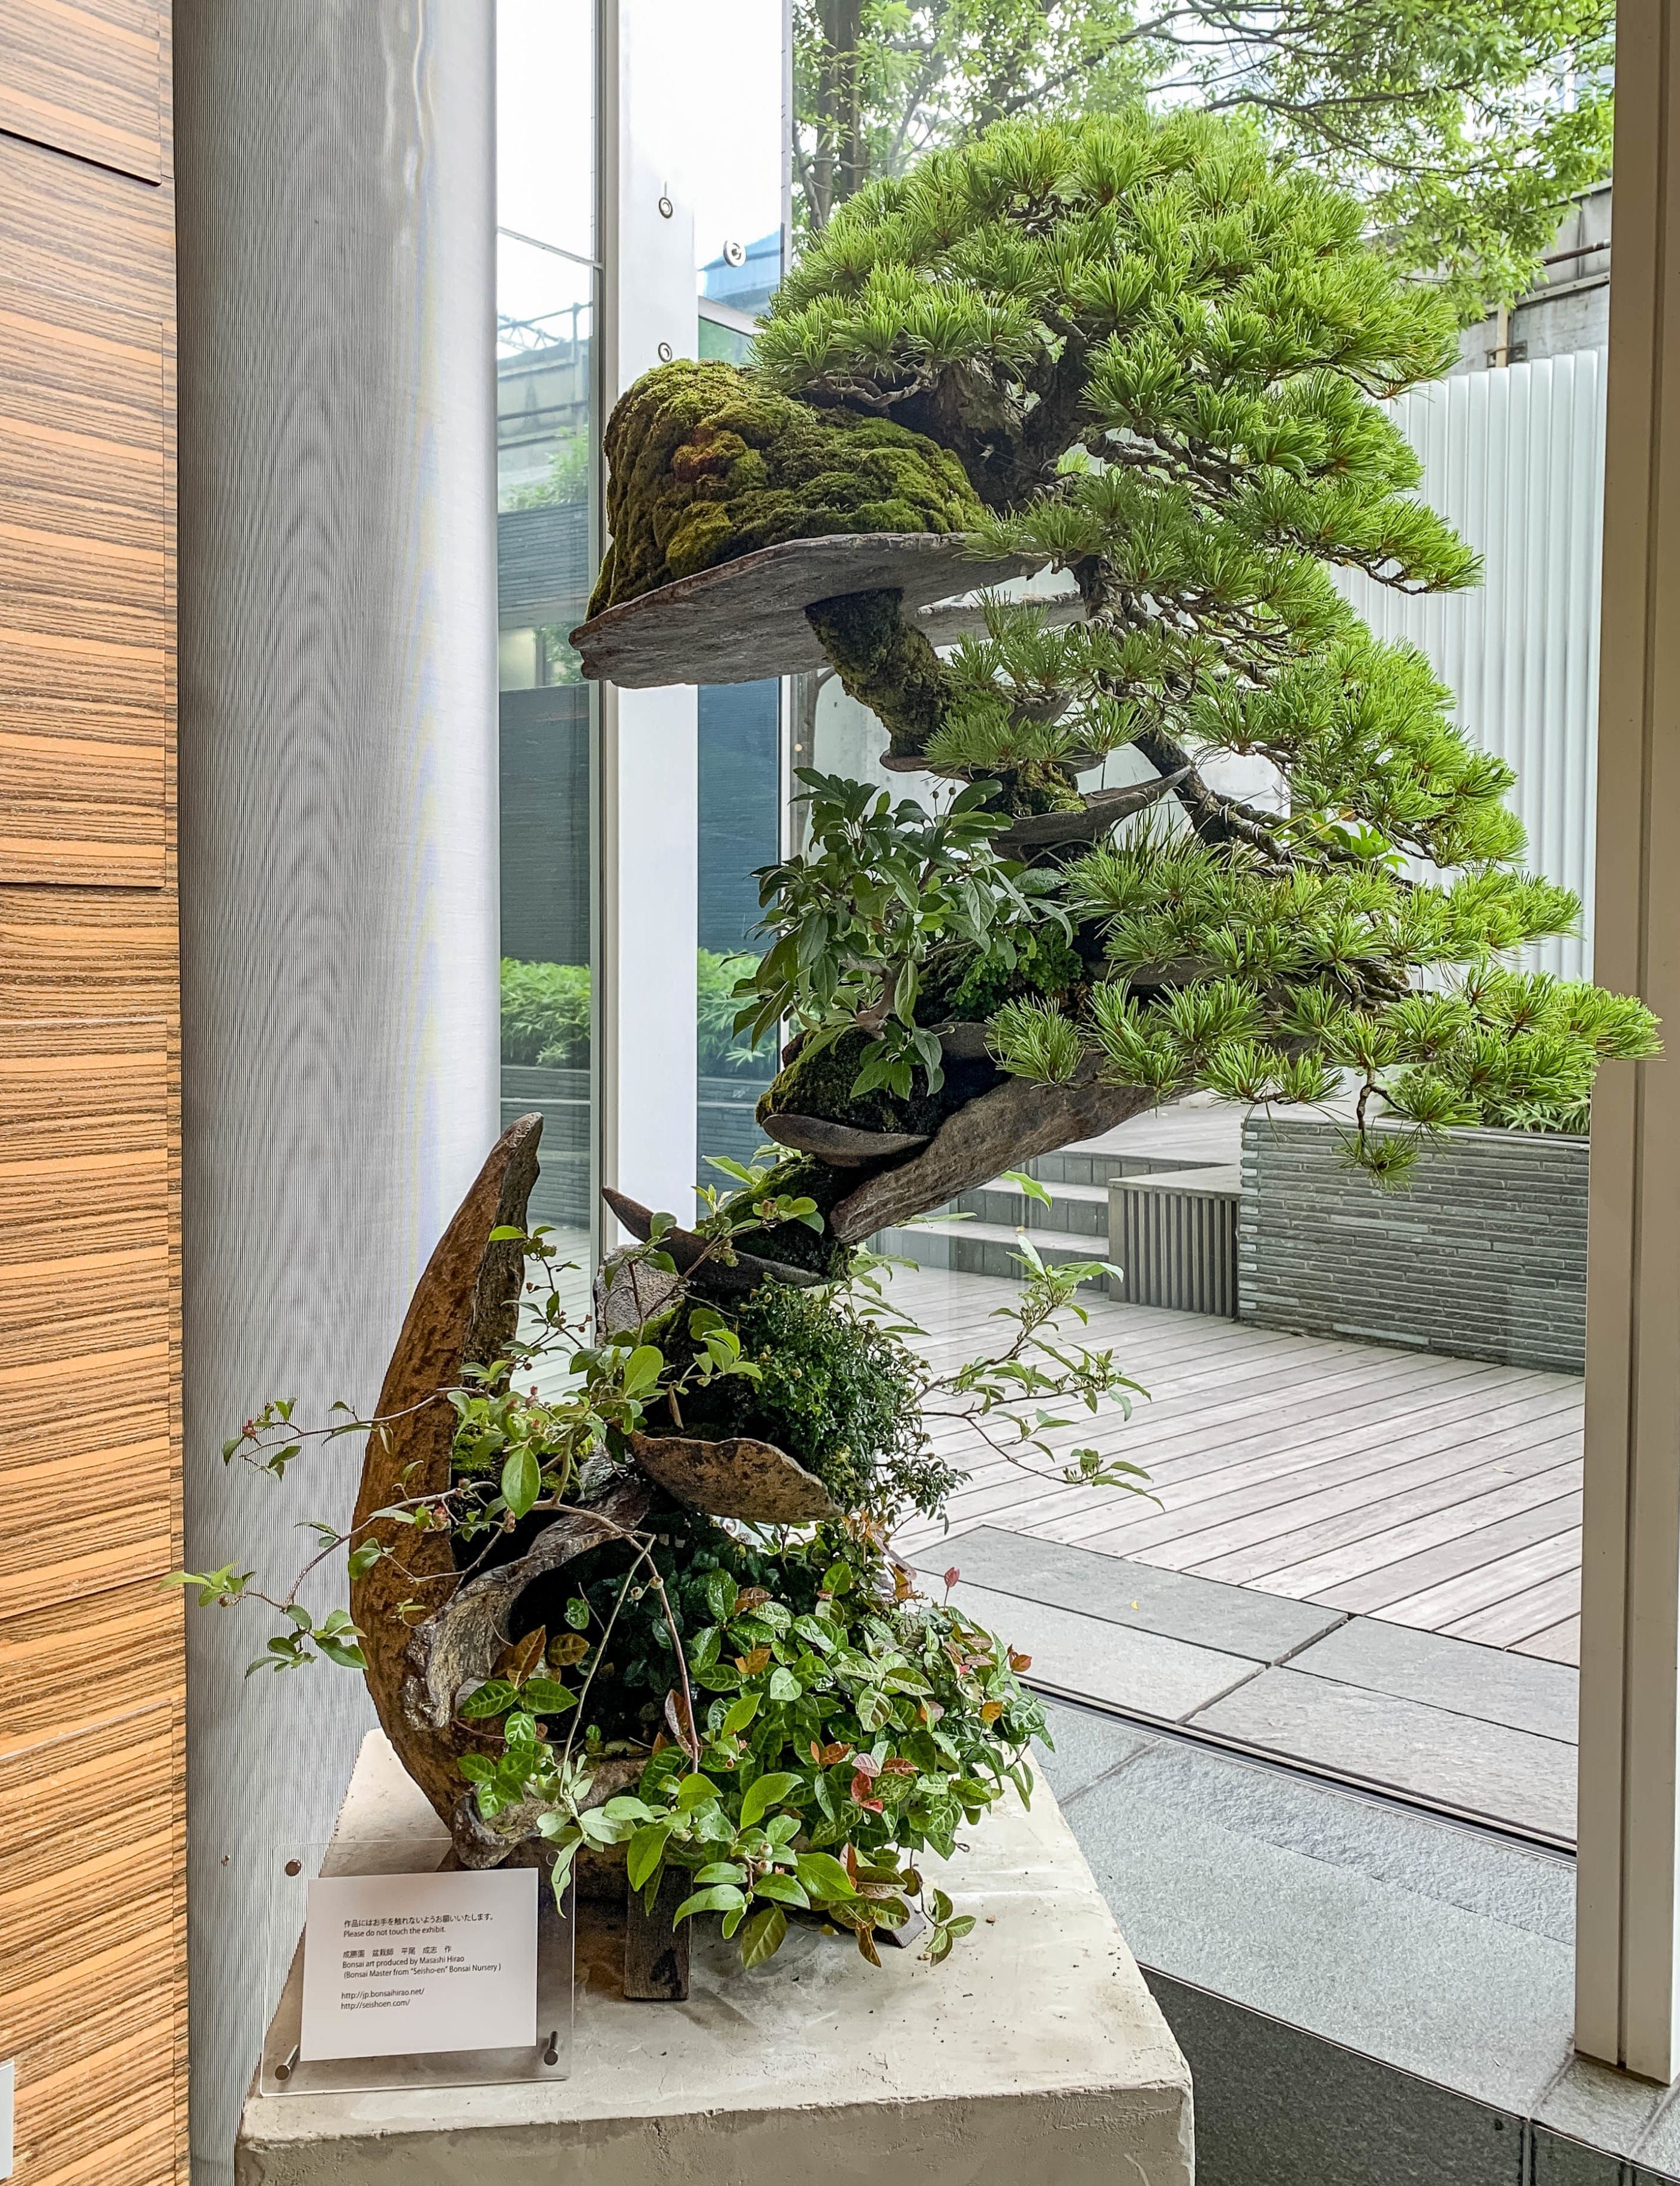 Bonsai art with various plants, stones and wood shapes sits in a corner of the lobby at Four Seasons Hotel Tokyo at Marunouchi.